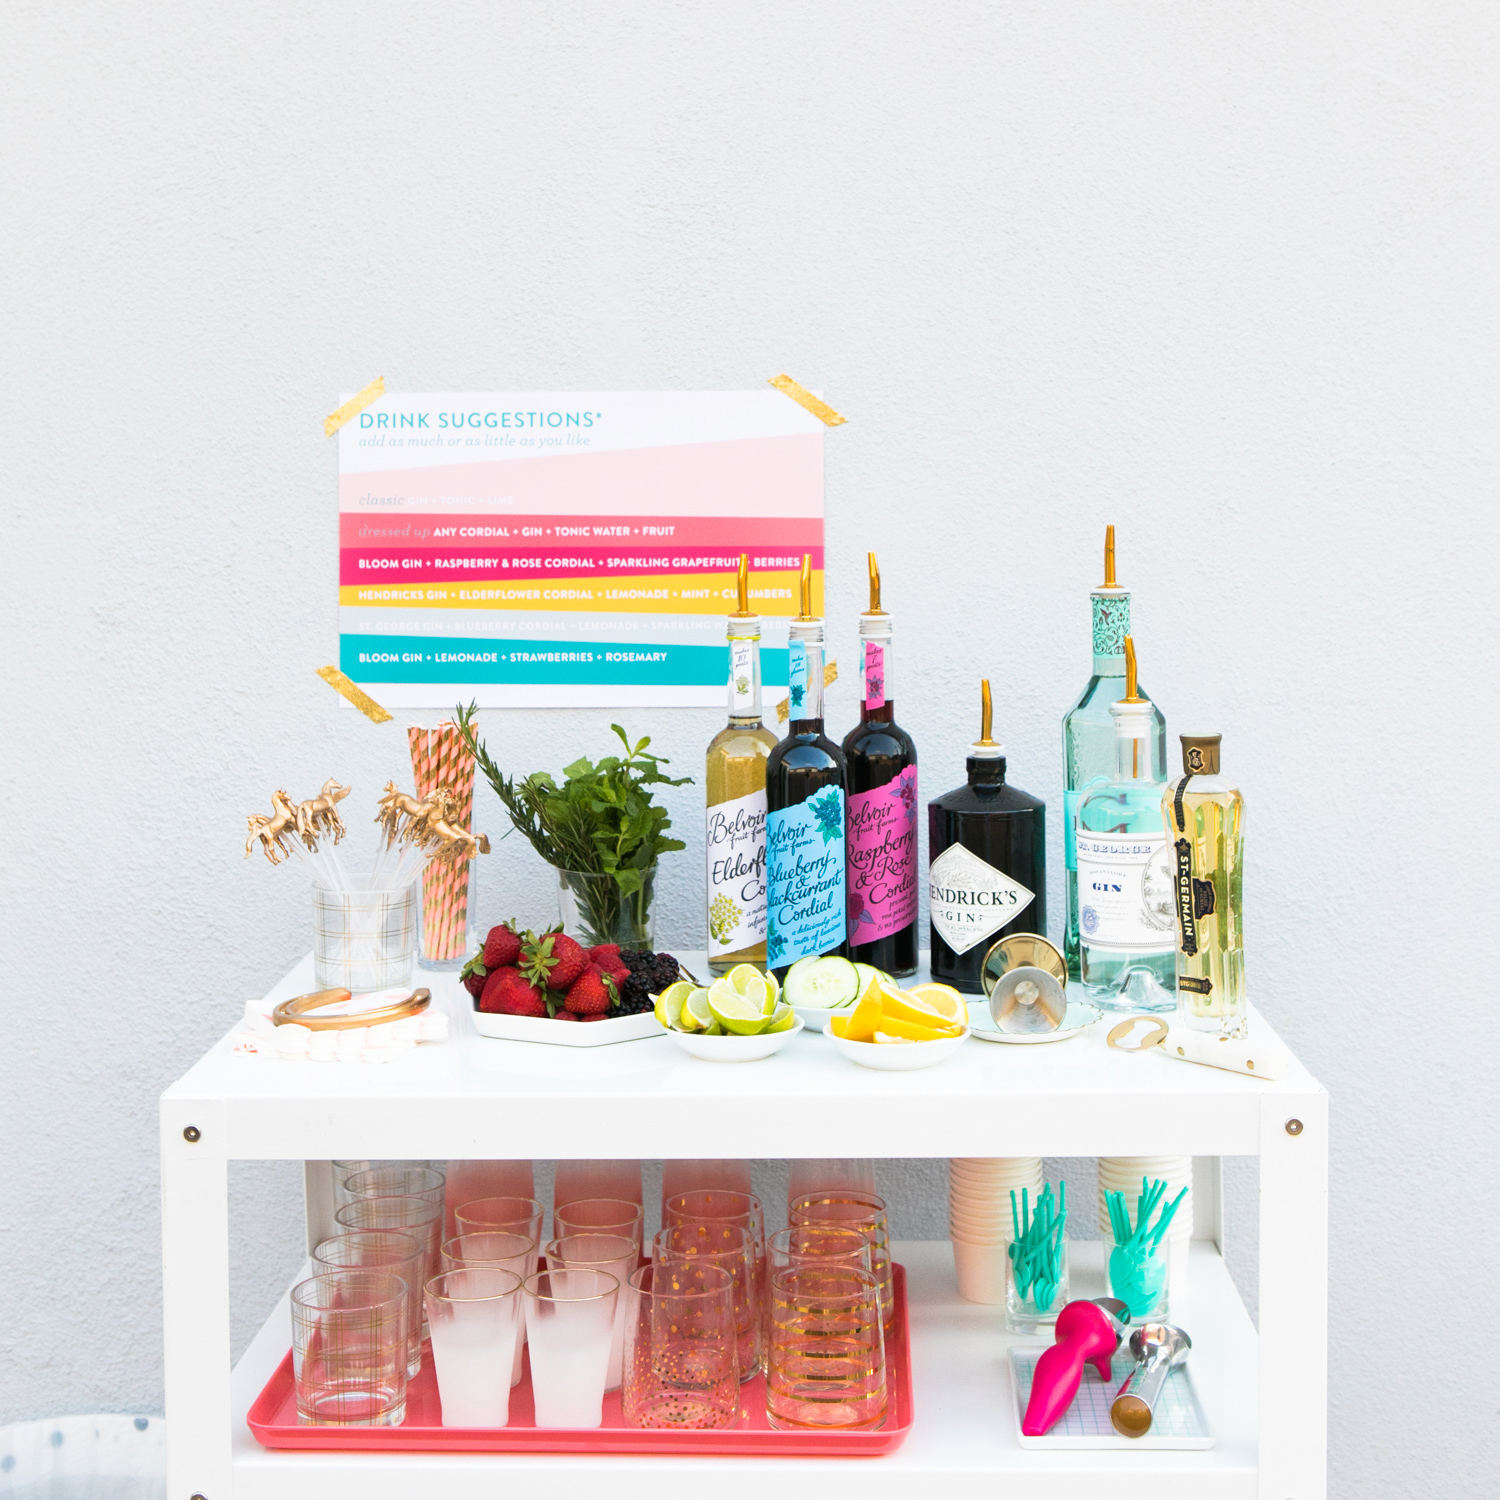 Create a DIY gin and tonic station at your next part. Style a bar cart with your favorite gin, cordials, and garnishes!